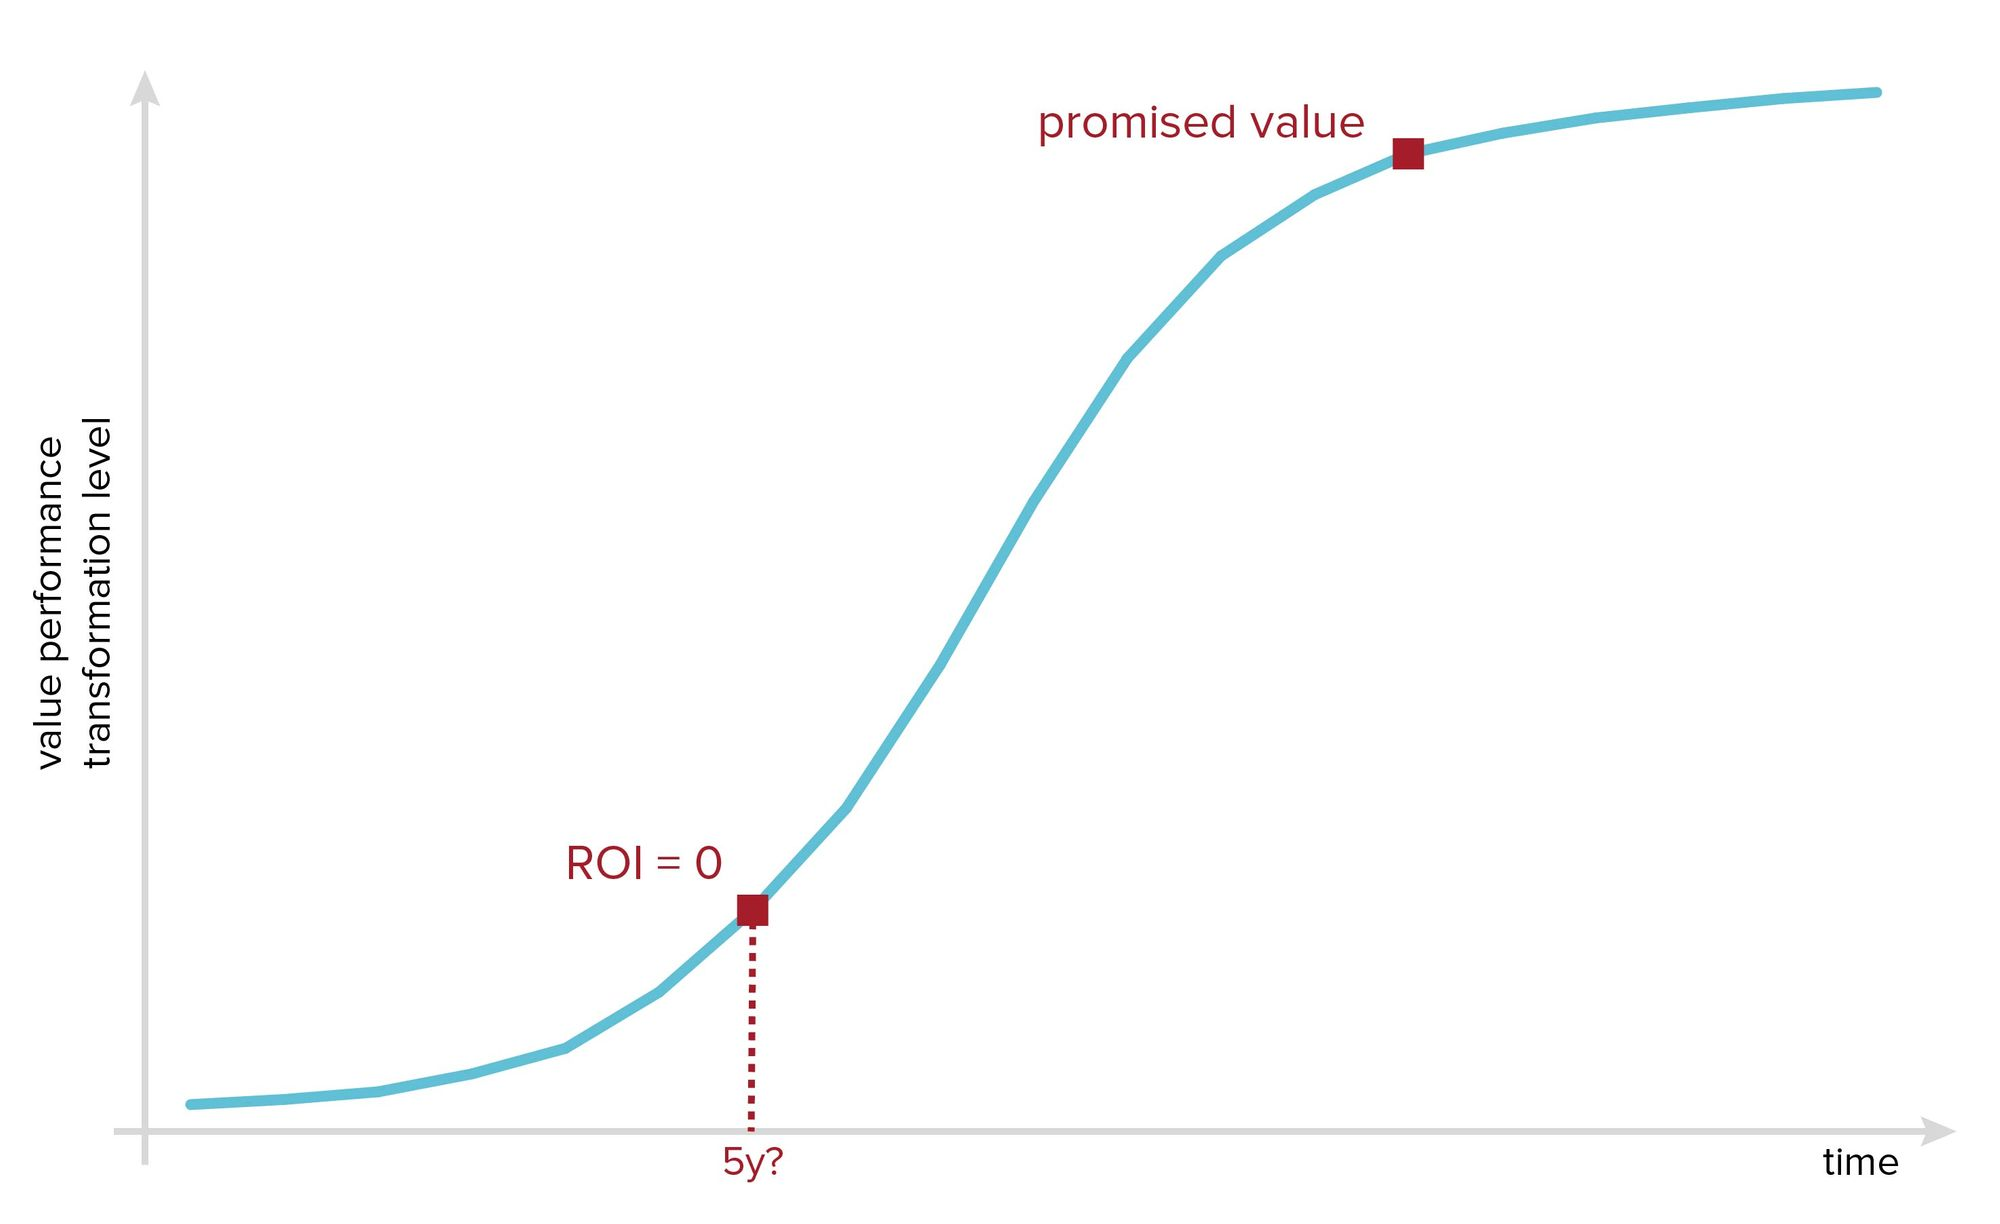 Transformation s-curve - ROI will be zero until a critical turning point before you can see promised value